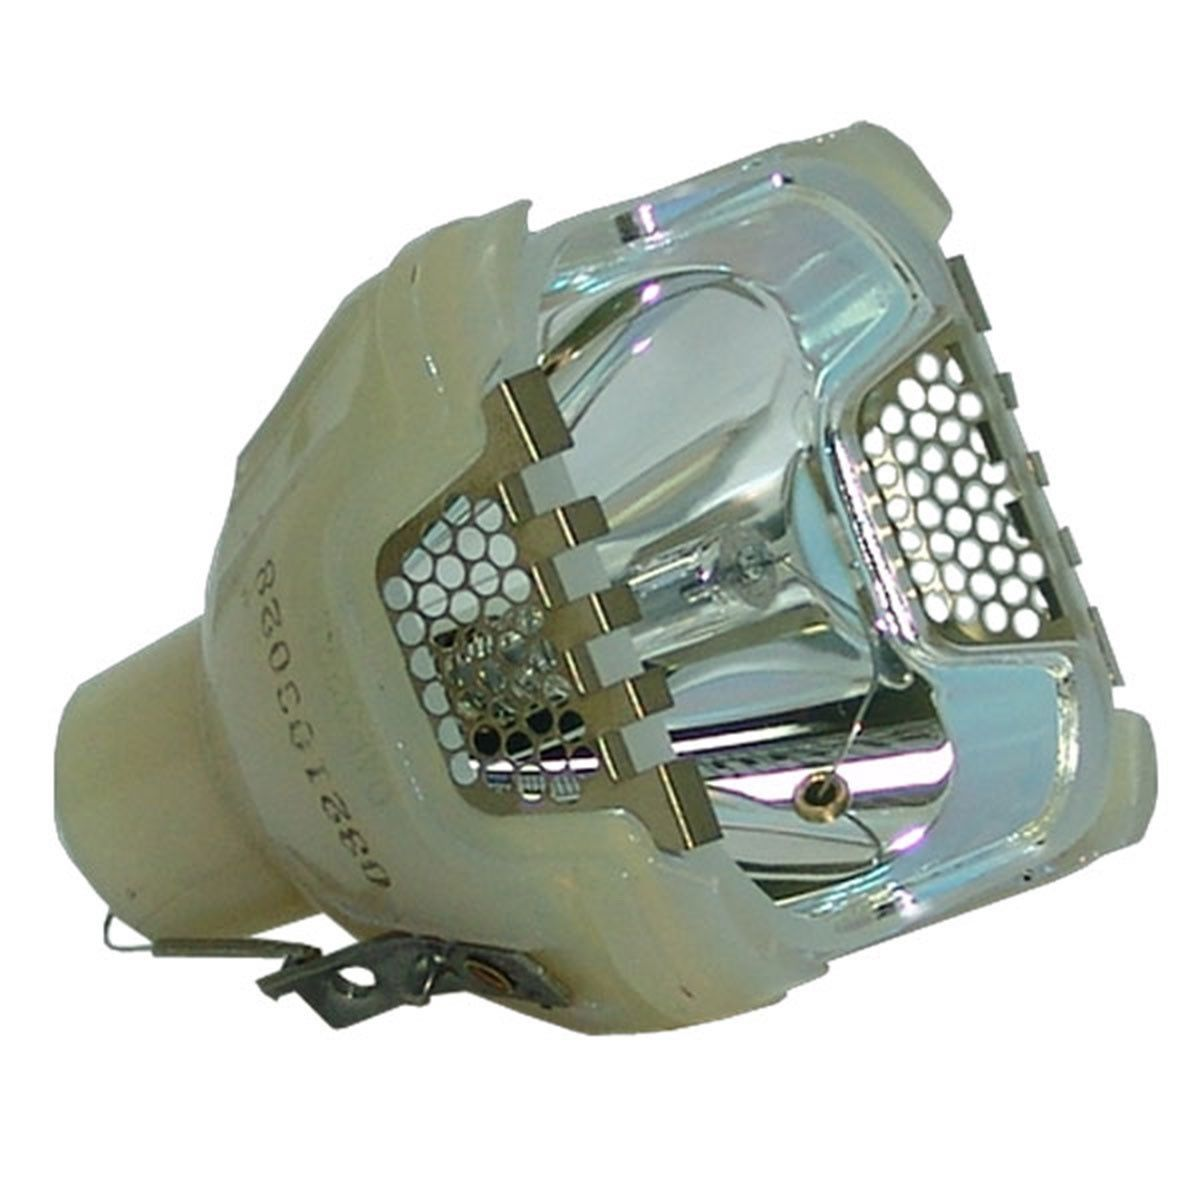 Compatible Bare Bulb LV-LP18 9268A001 for Canon LV-7210 LV-7215 LV-7220 LV7225 LV-7230 LV-7215E Projector Lamp Bulb with housing